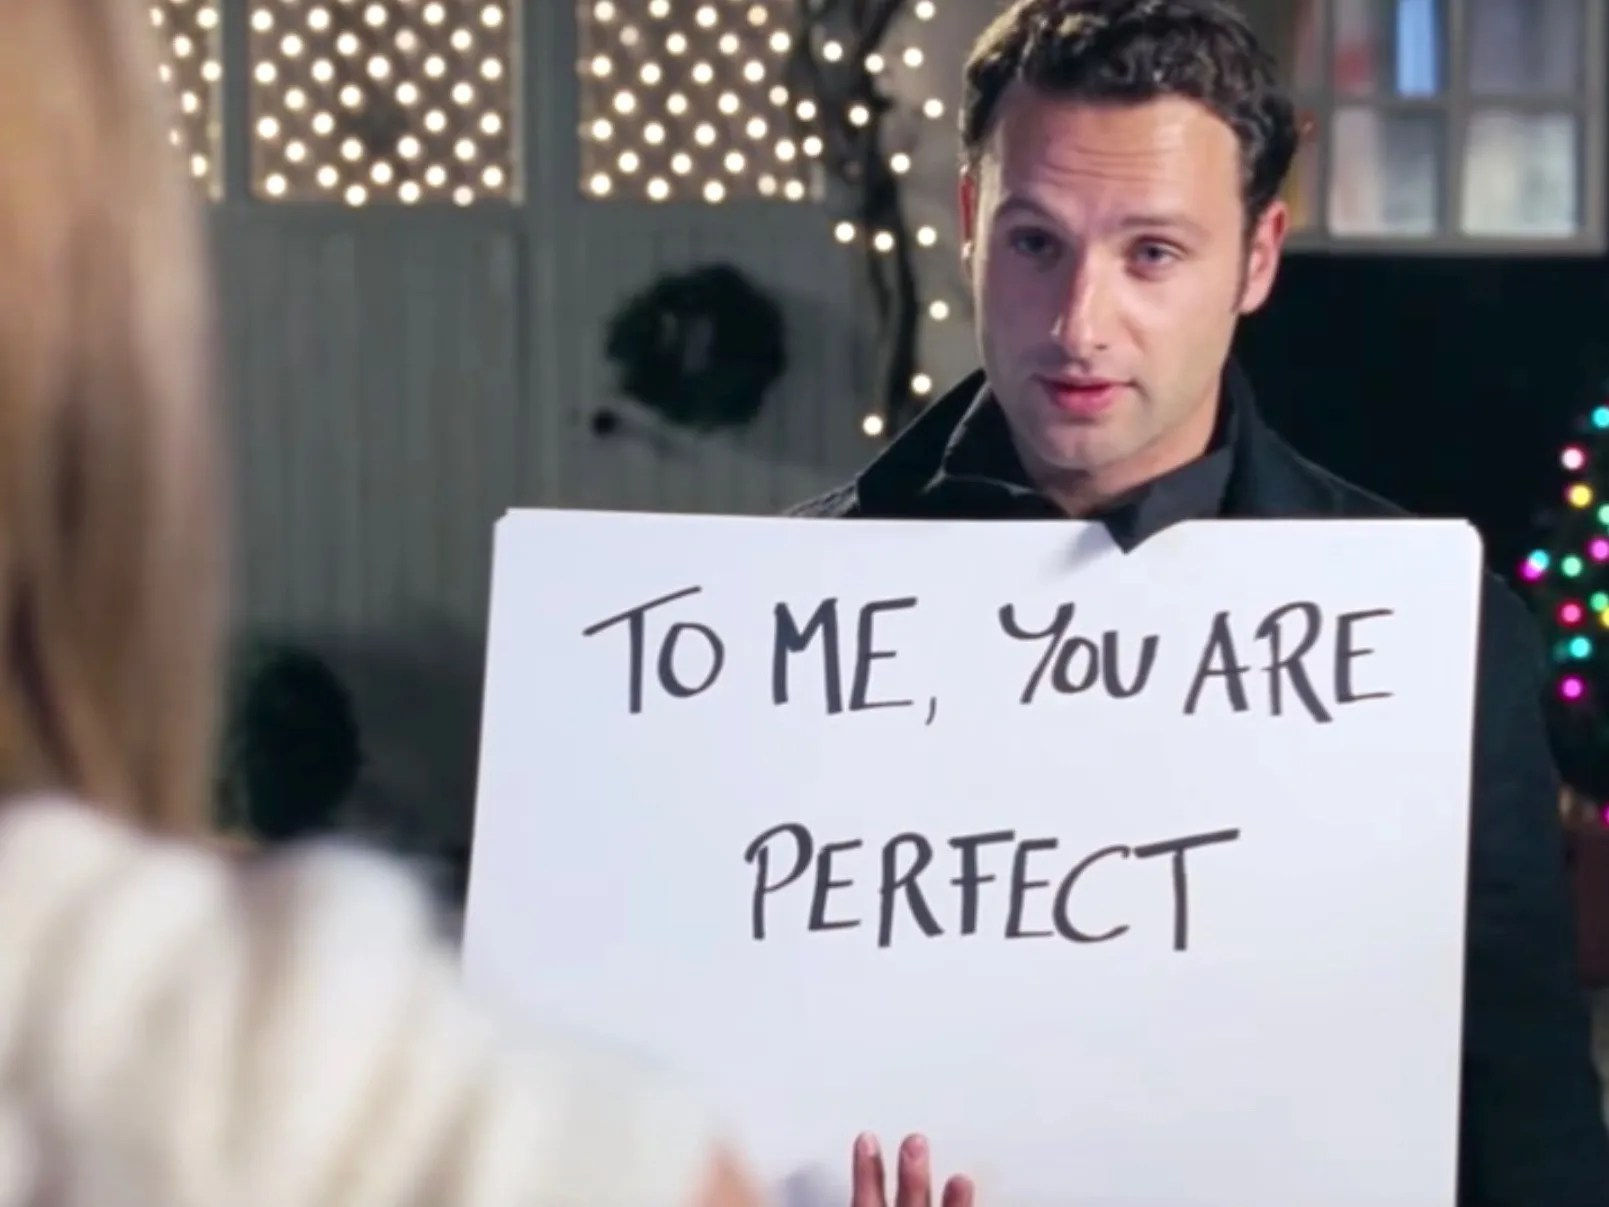 Resultado de imagen para love actually to me you are perfect